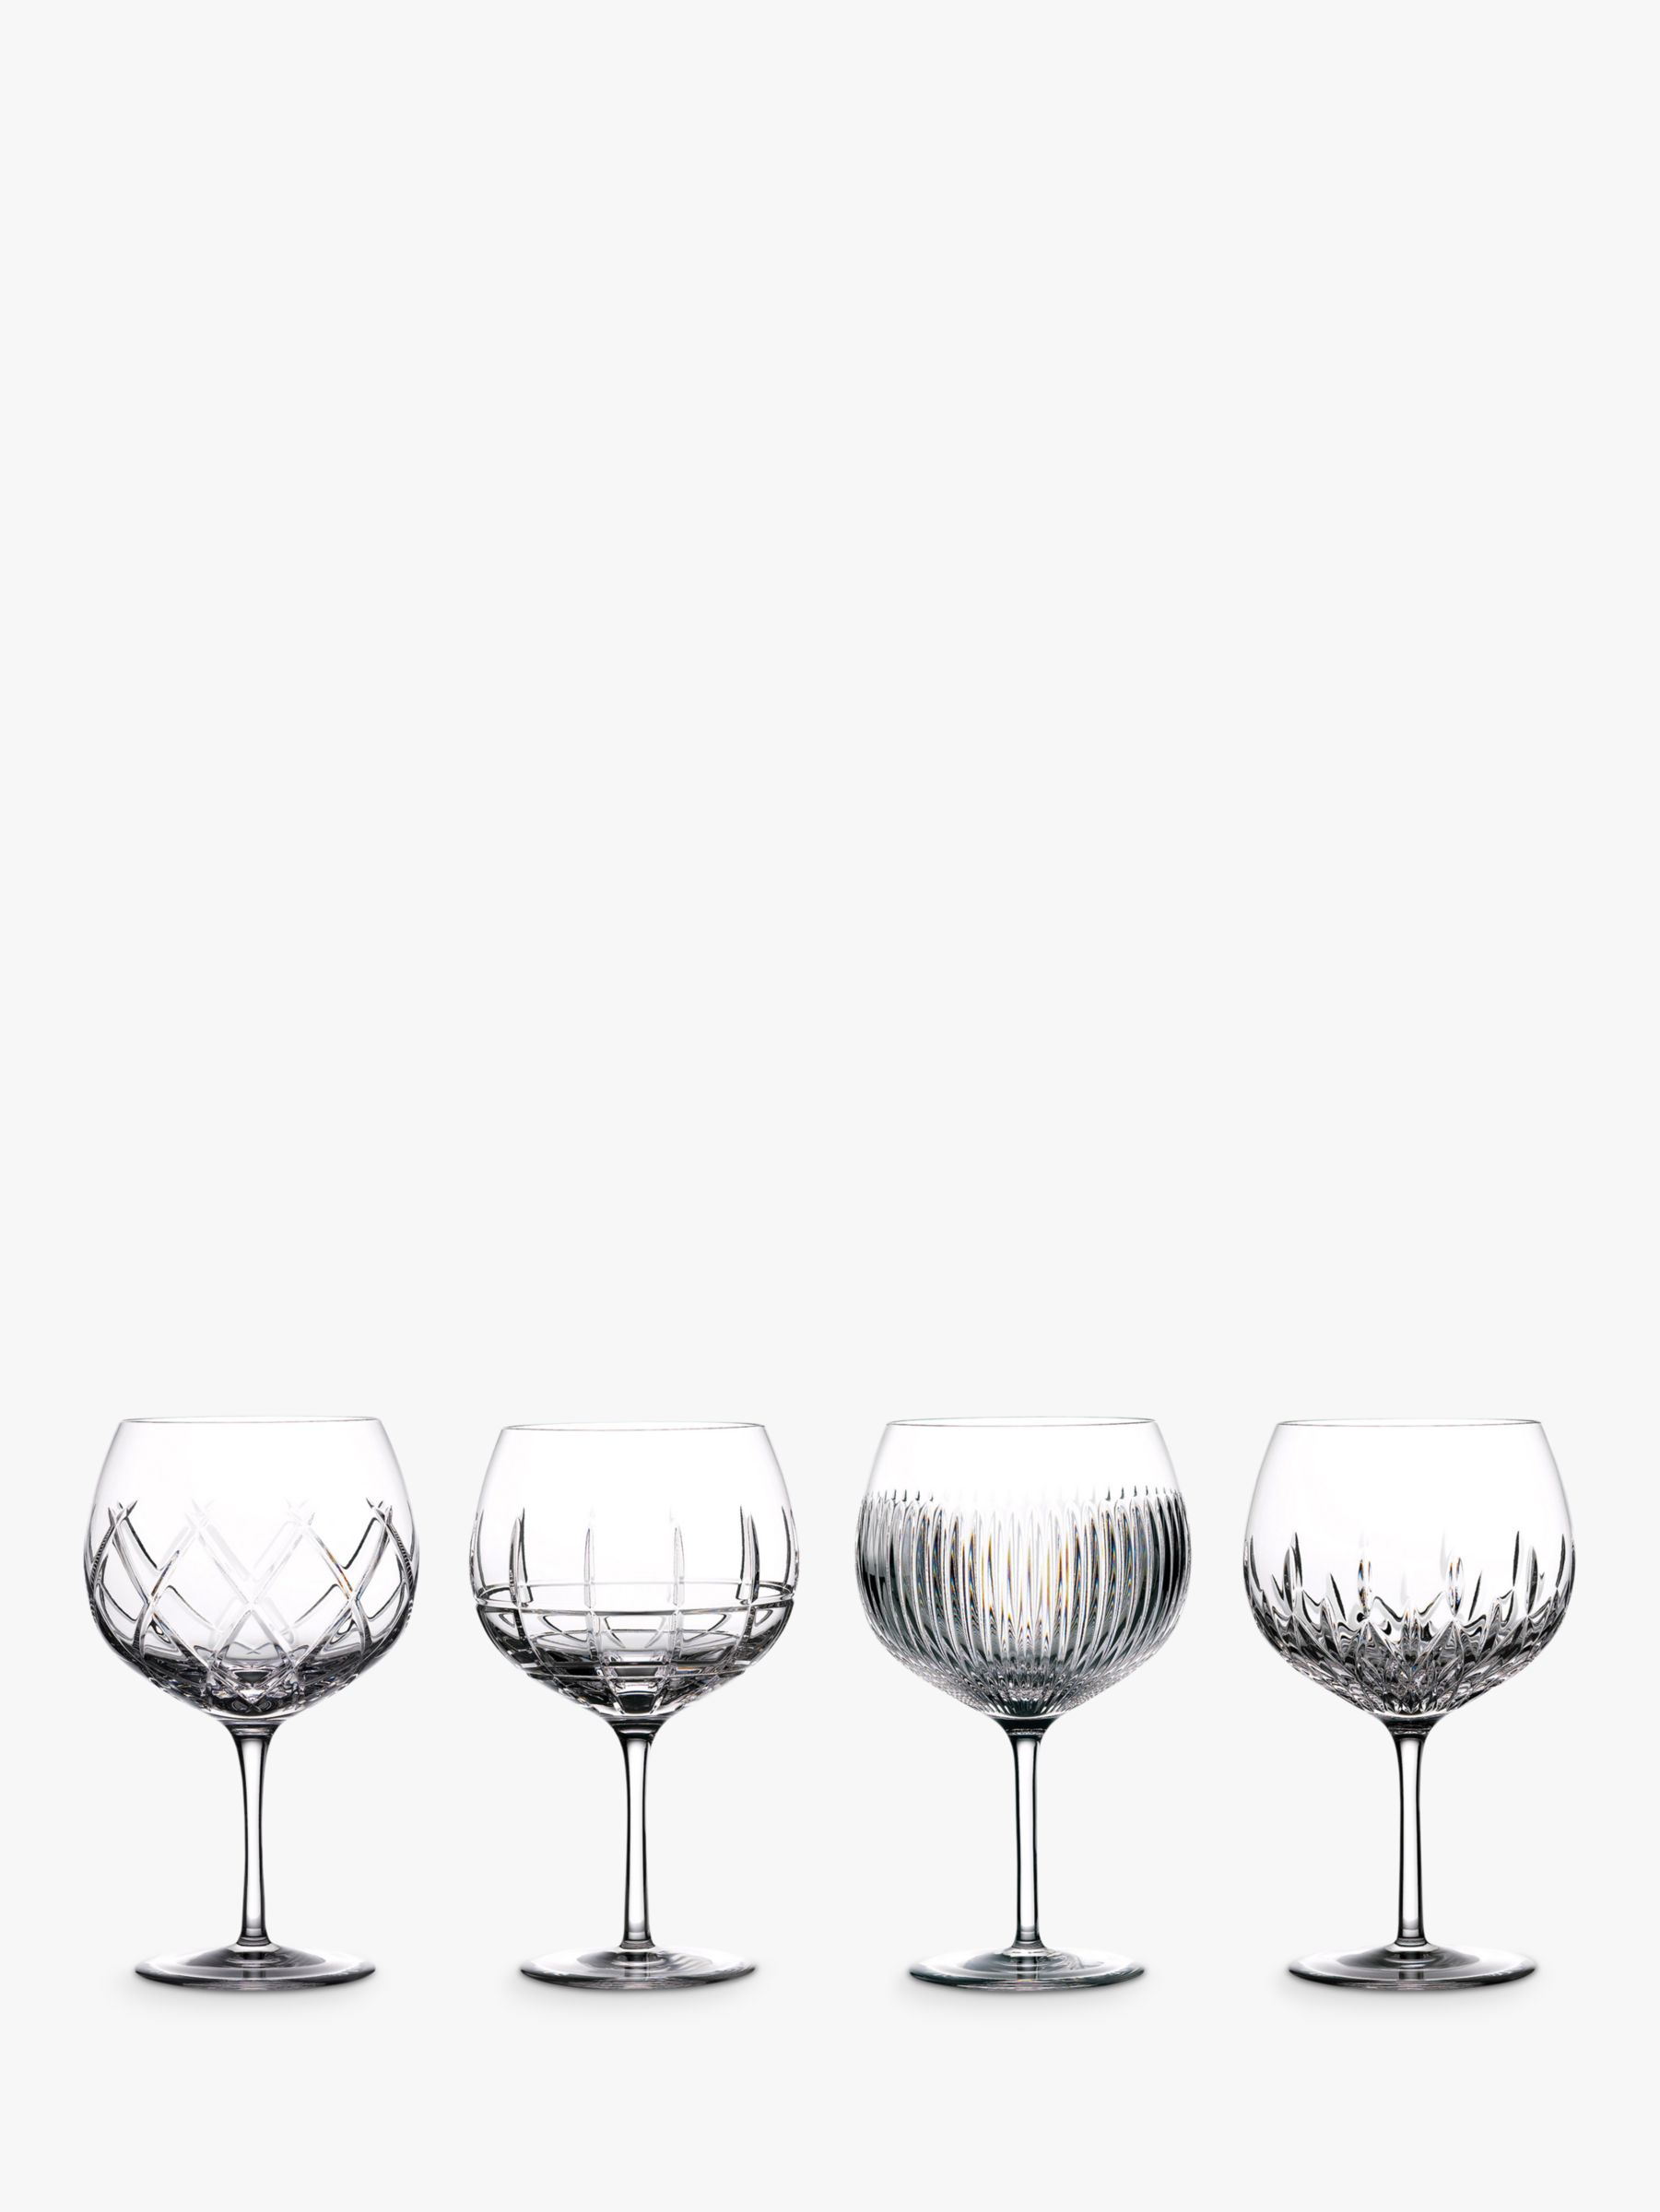 Waterford Waterford Gin Journeys Balloon Glasses, Set of 4, 550ml, Clear